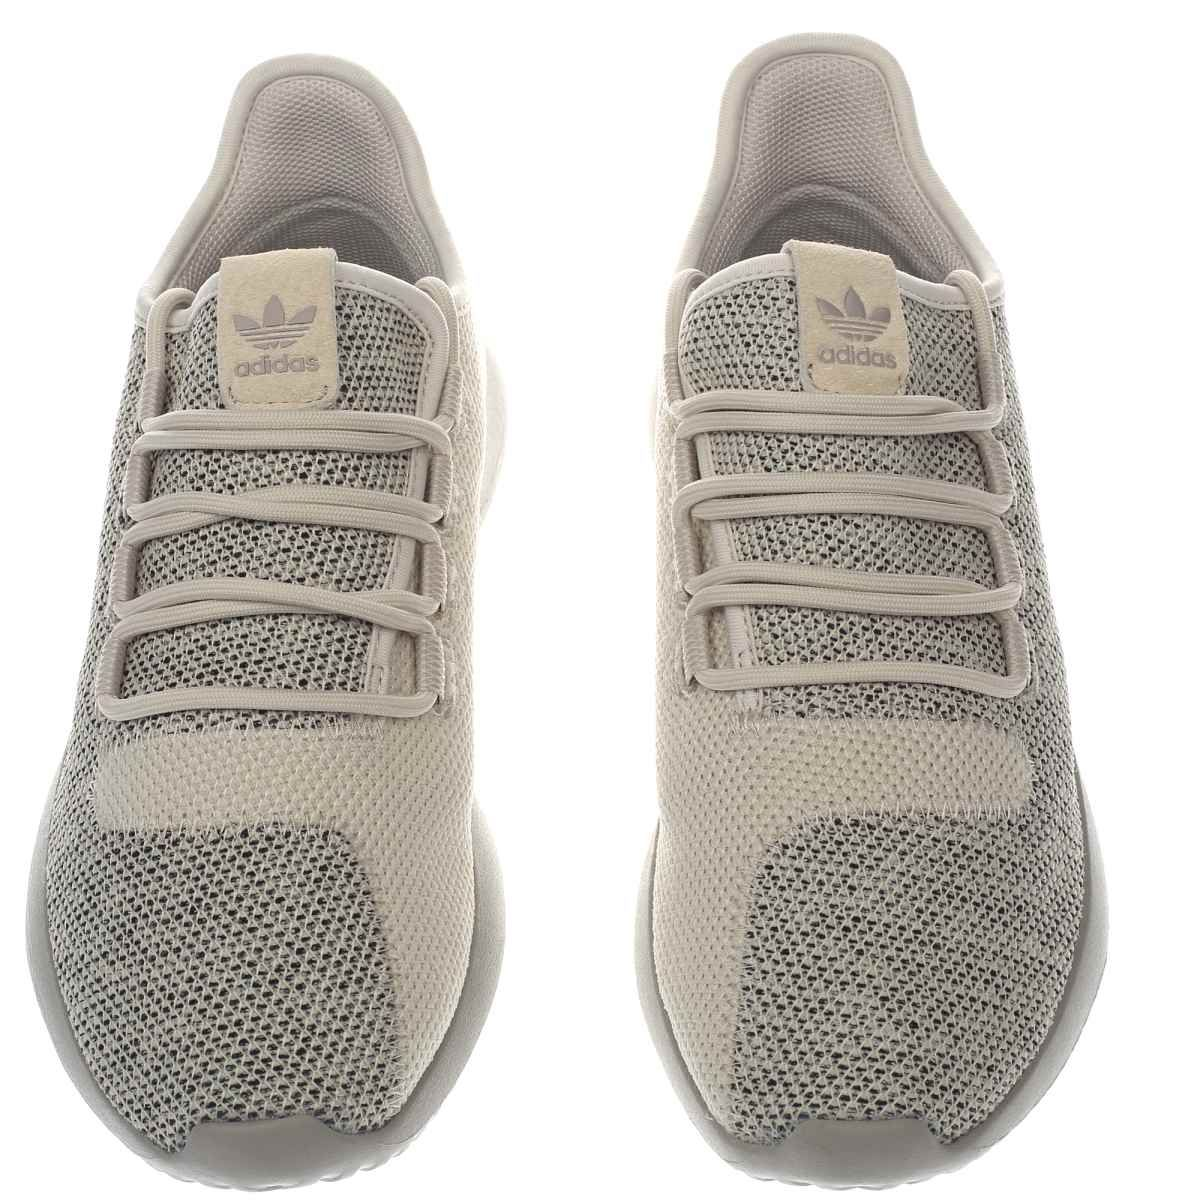 8e92de8fd womens adidas beige tubular shadow knit trainers | shoes | Adidas ...